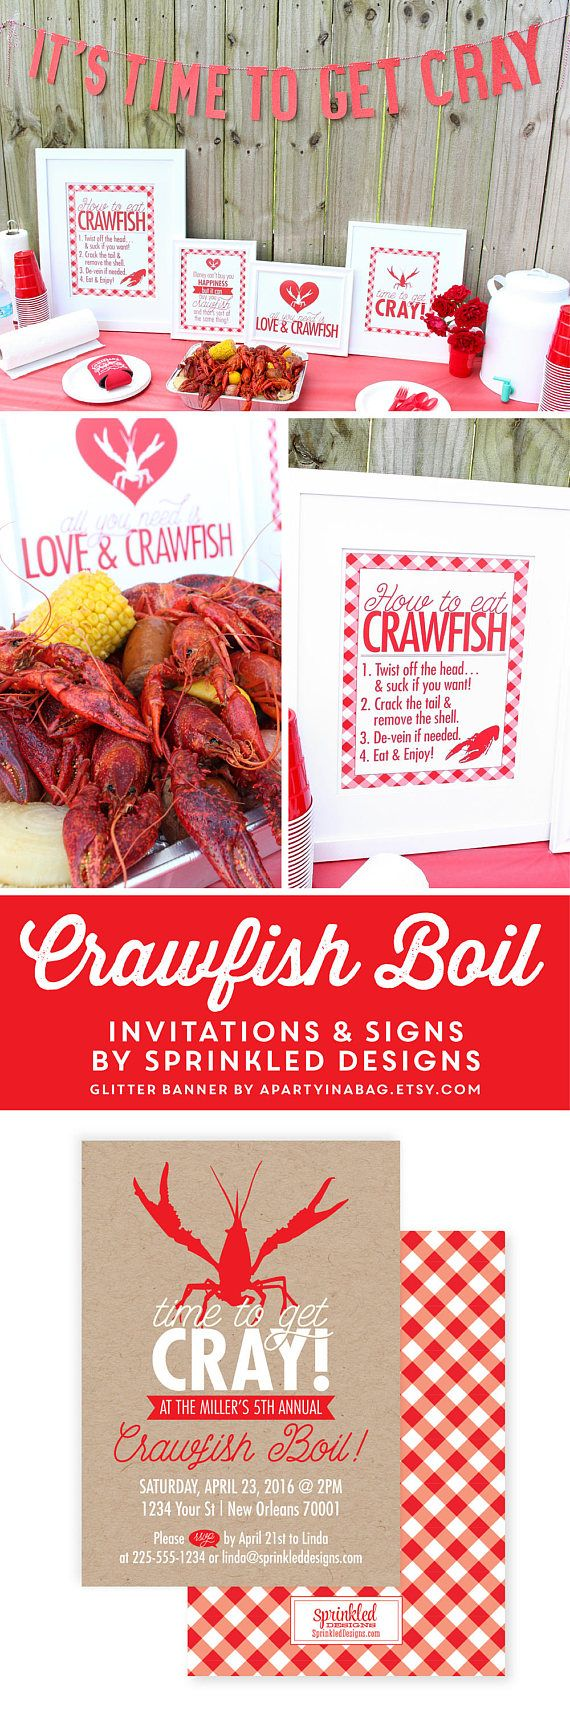 Crawfish Boil Invitation - Time to get Cray Cray - New Orleans Seafood Boil - Rustic Kraft Paper - Louisiana Crawfish Boil Party Invites - SprinkledDesigns.com